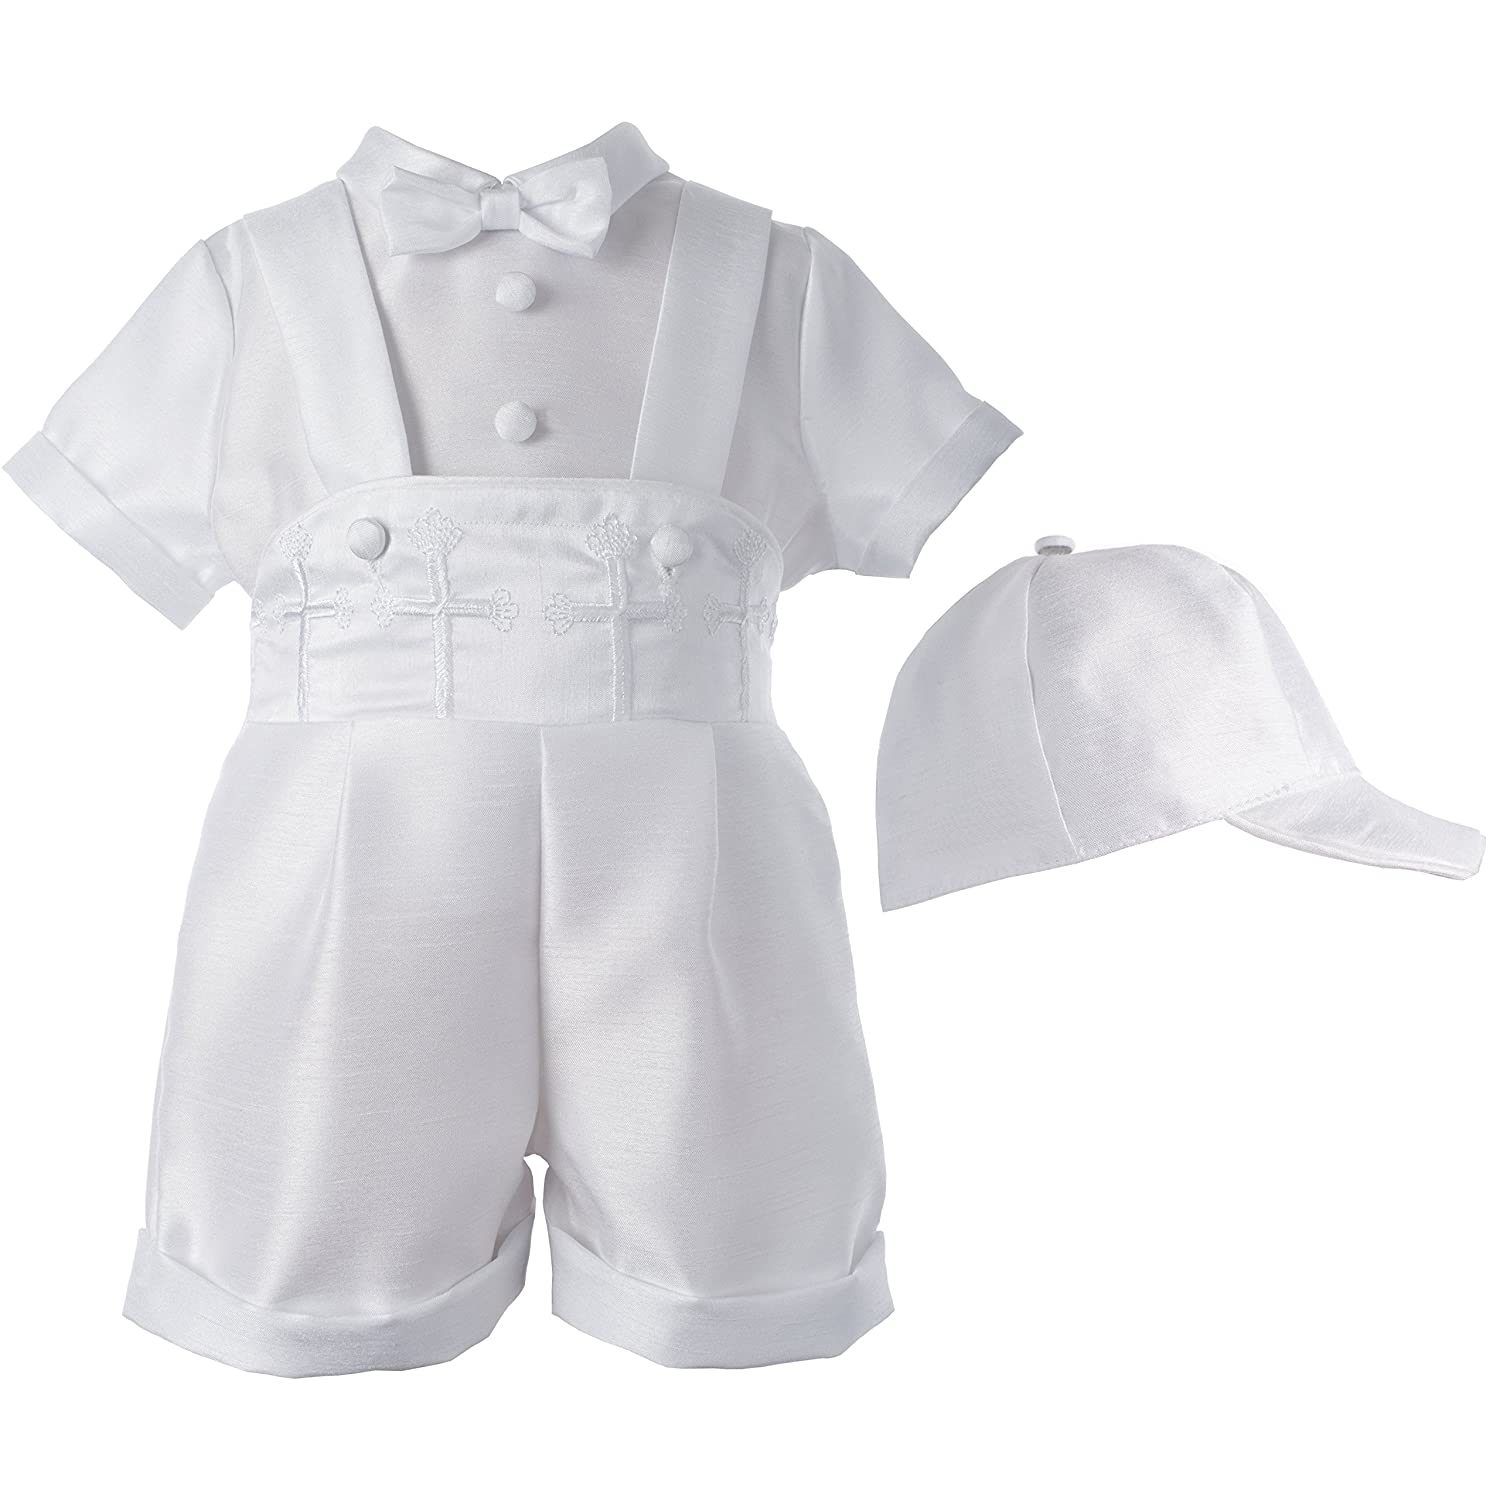 Lauren Madison Baby-Boys Newborn Infant Three Piece Short Pant Outfit Set 1523